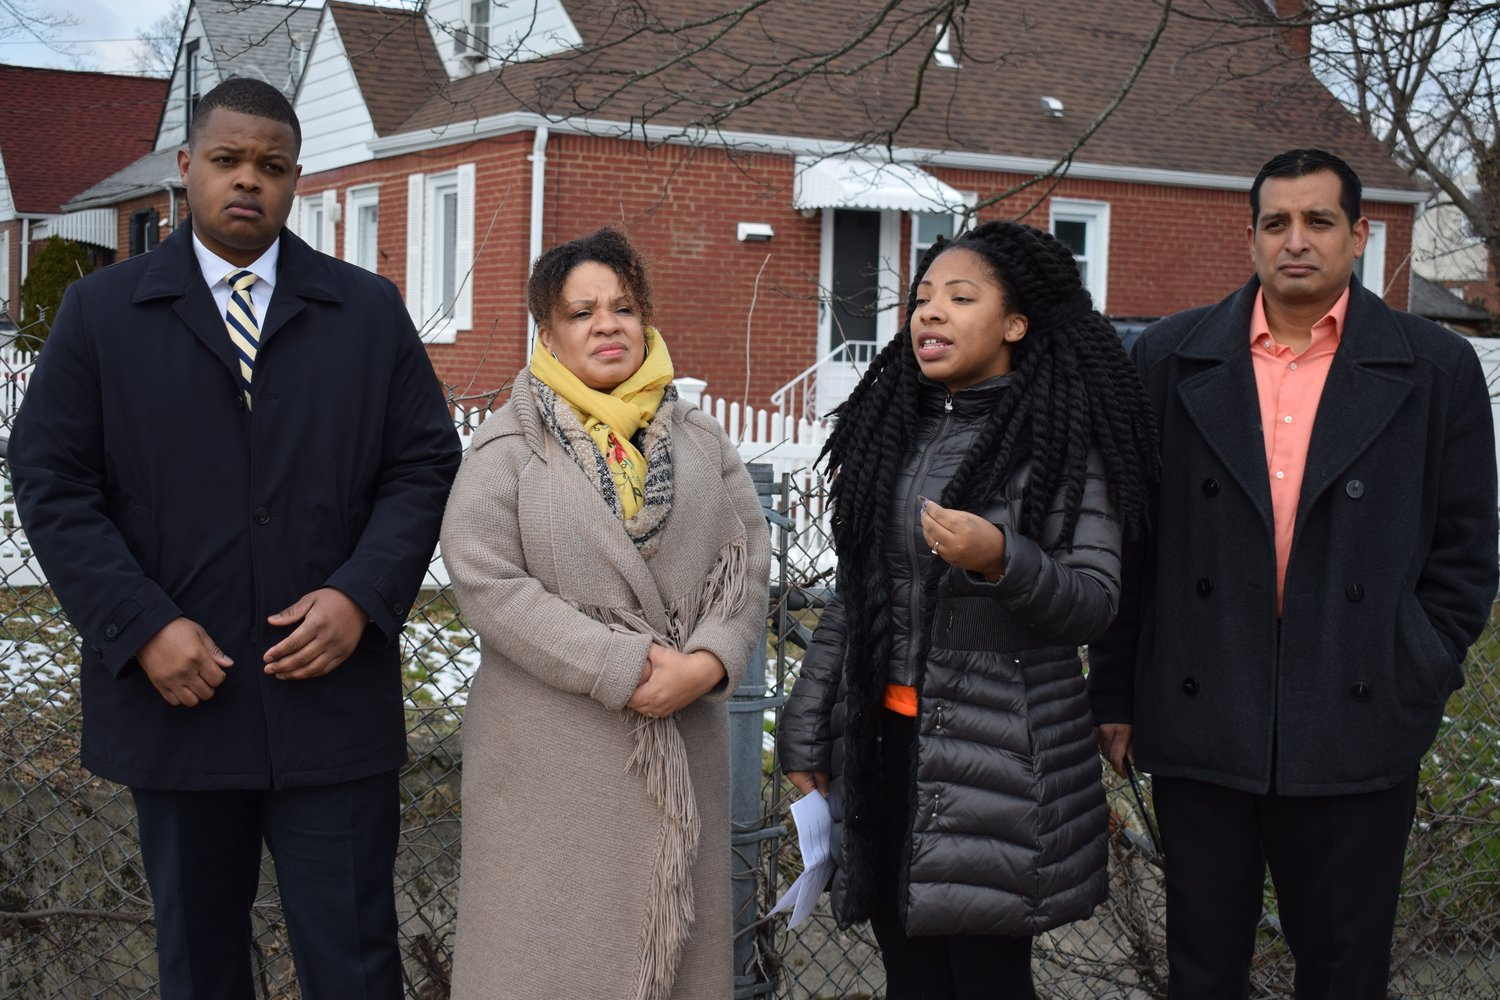 Pierre-Johnson and her daughter, Tamar Paoli, met with then congressional candidate Carl Achille and activist Victor Perez earlier this year to ask Nassau County officials to test Elmont's water supply for carcinogens.